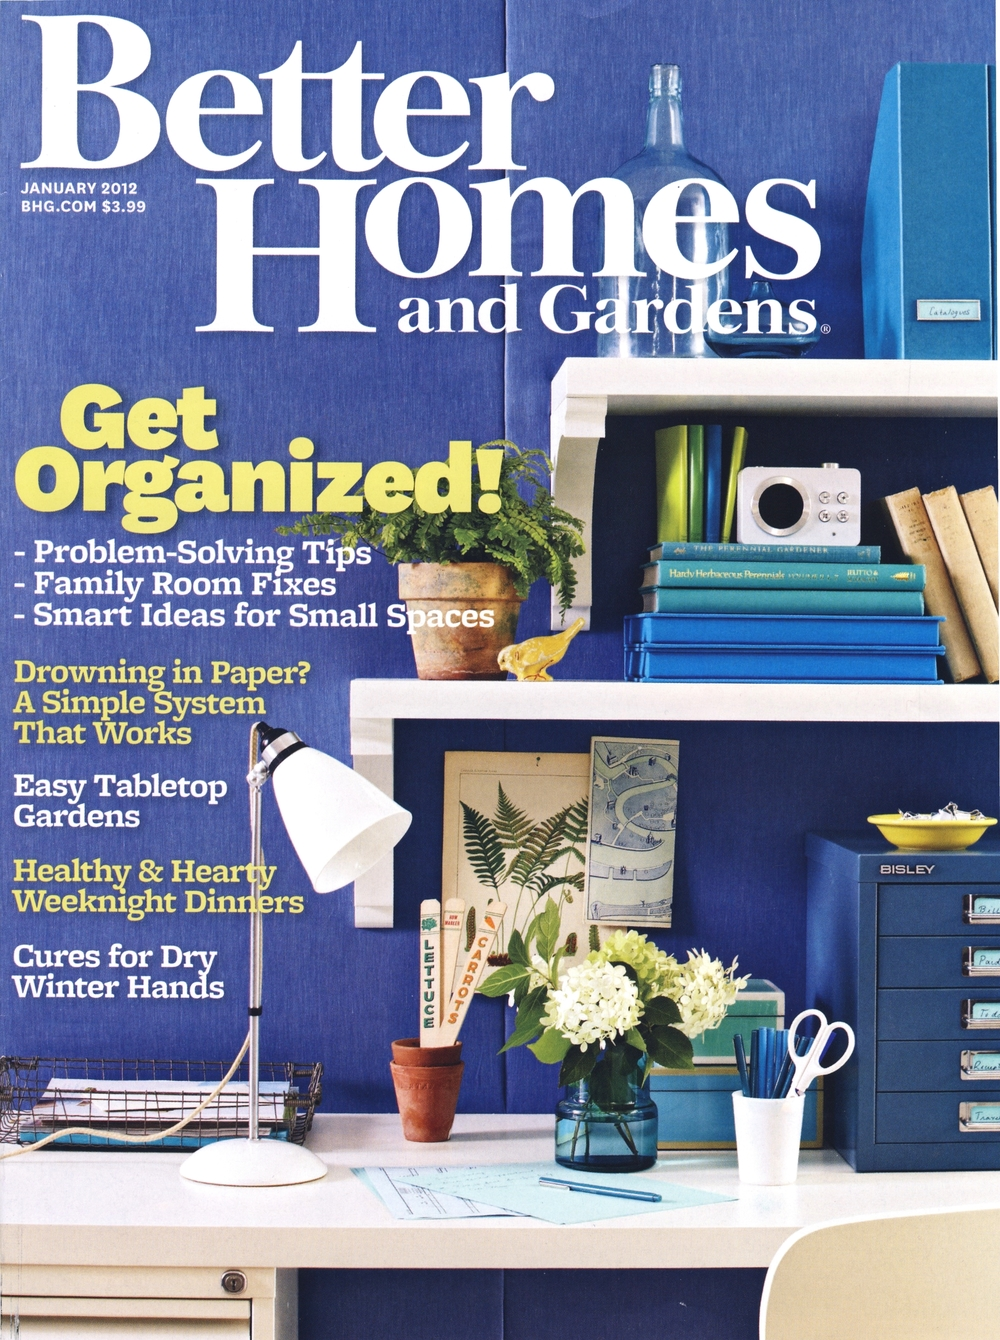 bhg jan 2012 cover.jpeg